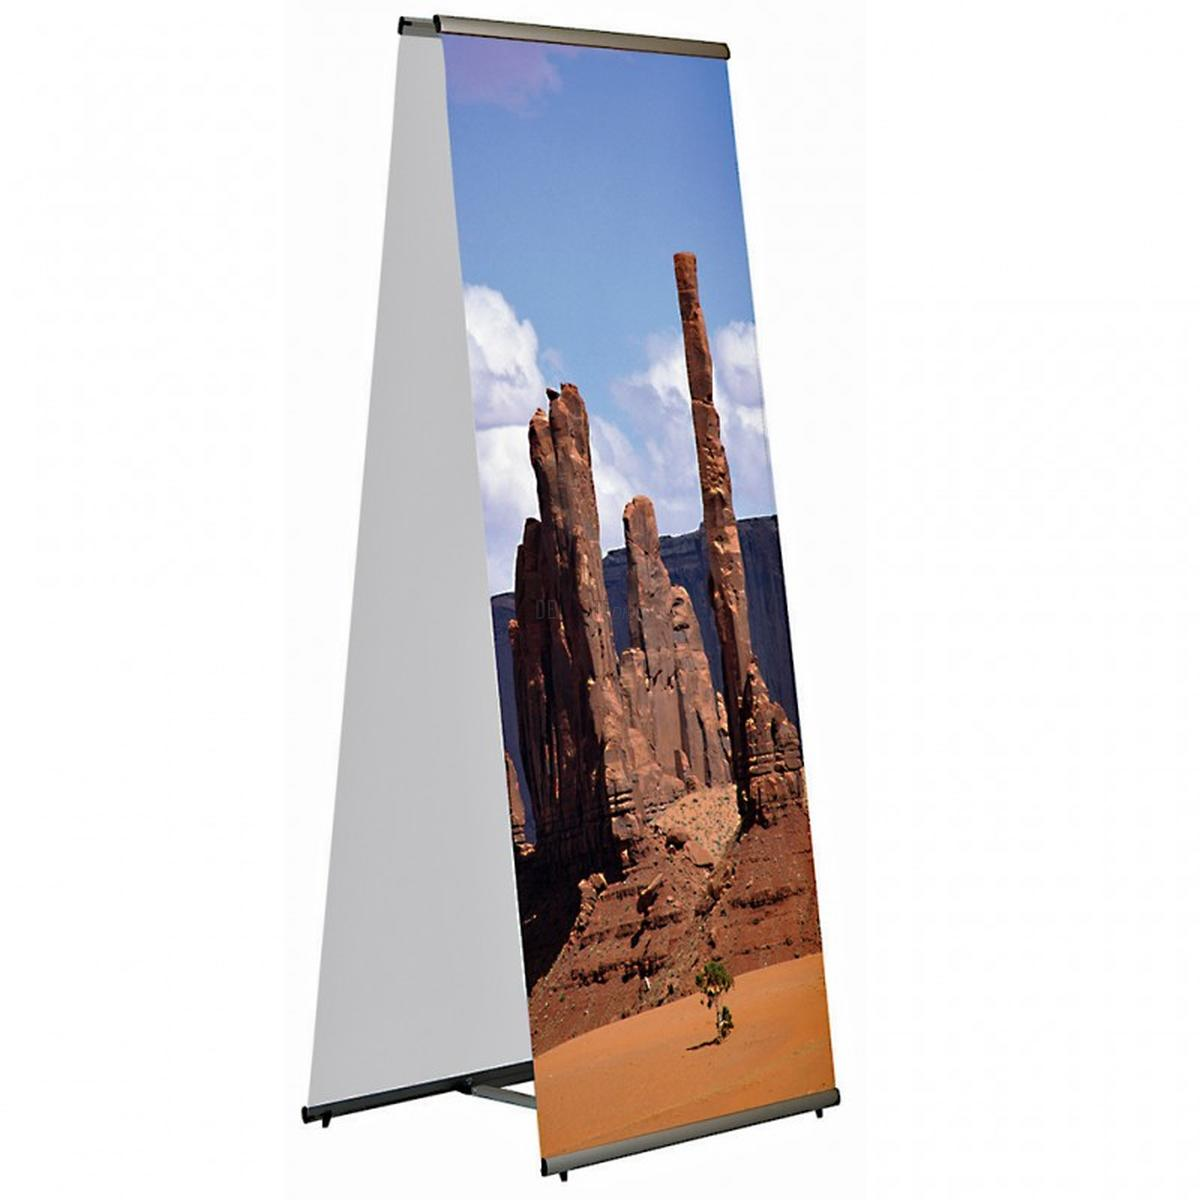 L-Banner Display Snapy 1000 x 2000 Twin